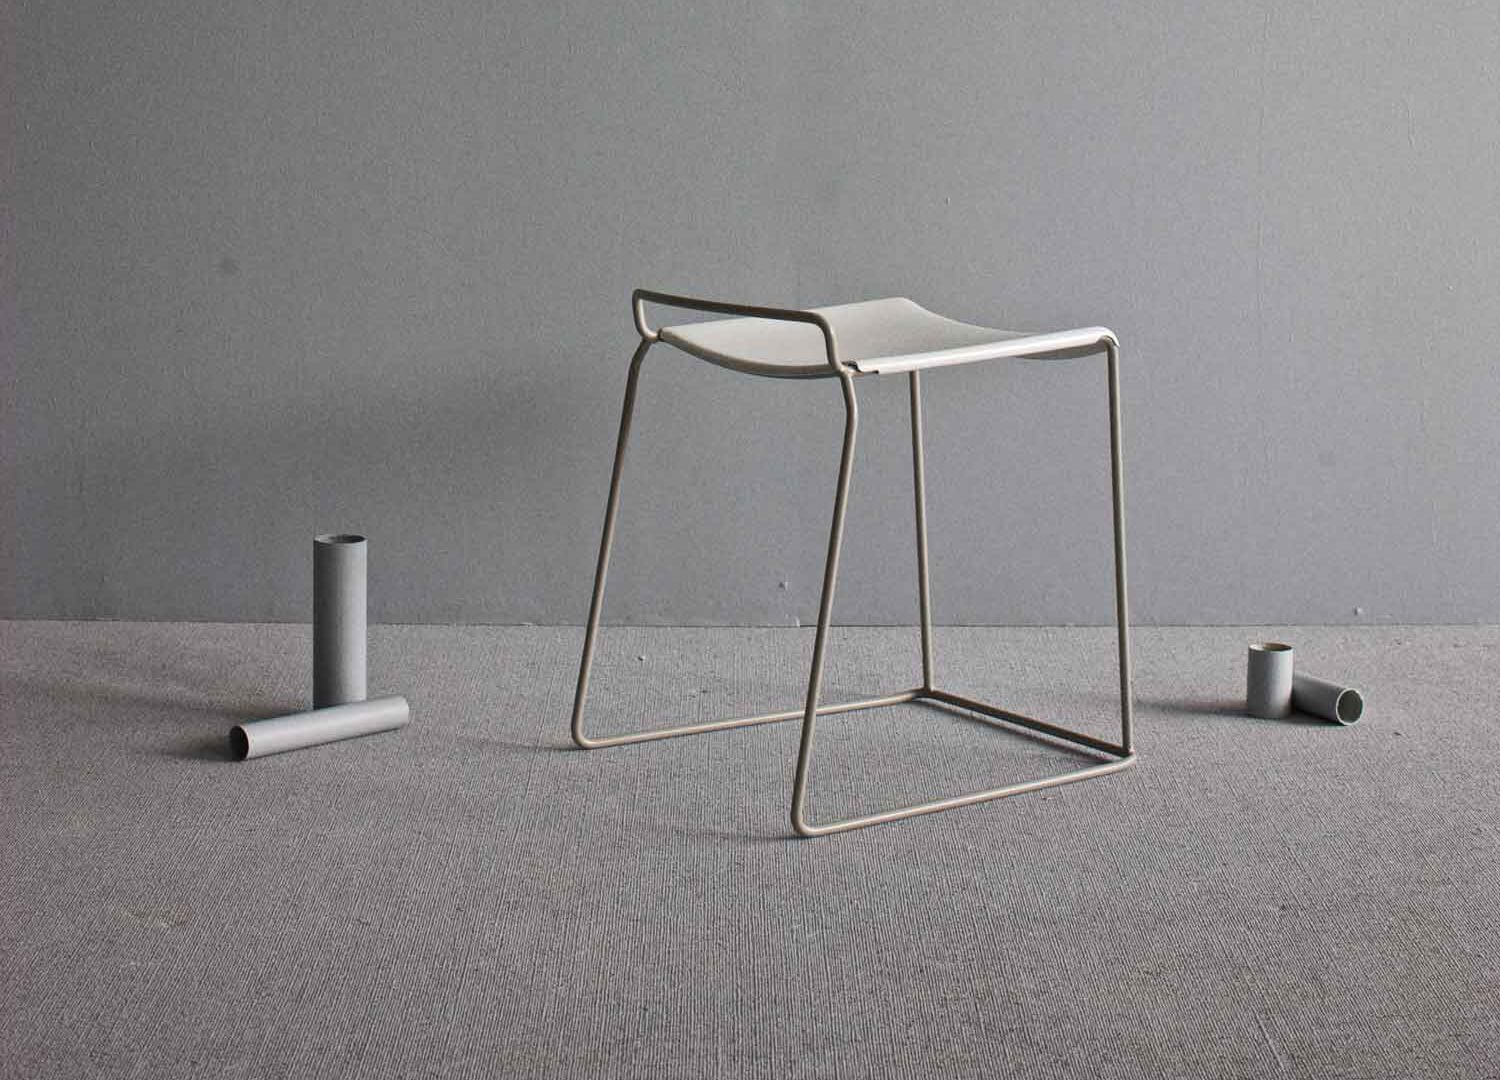 Gallery Of Uccio Stool By Barbera Local Australian Furniture, Lighting & Object Design Melbourne, Vic Image 5